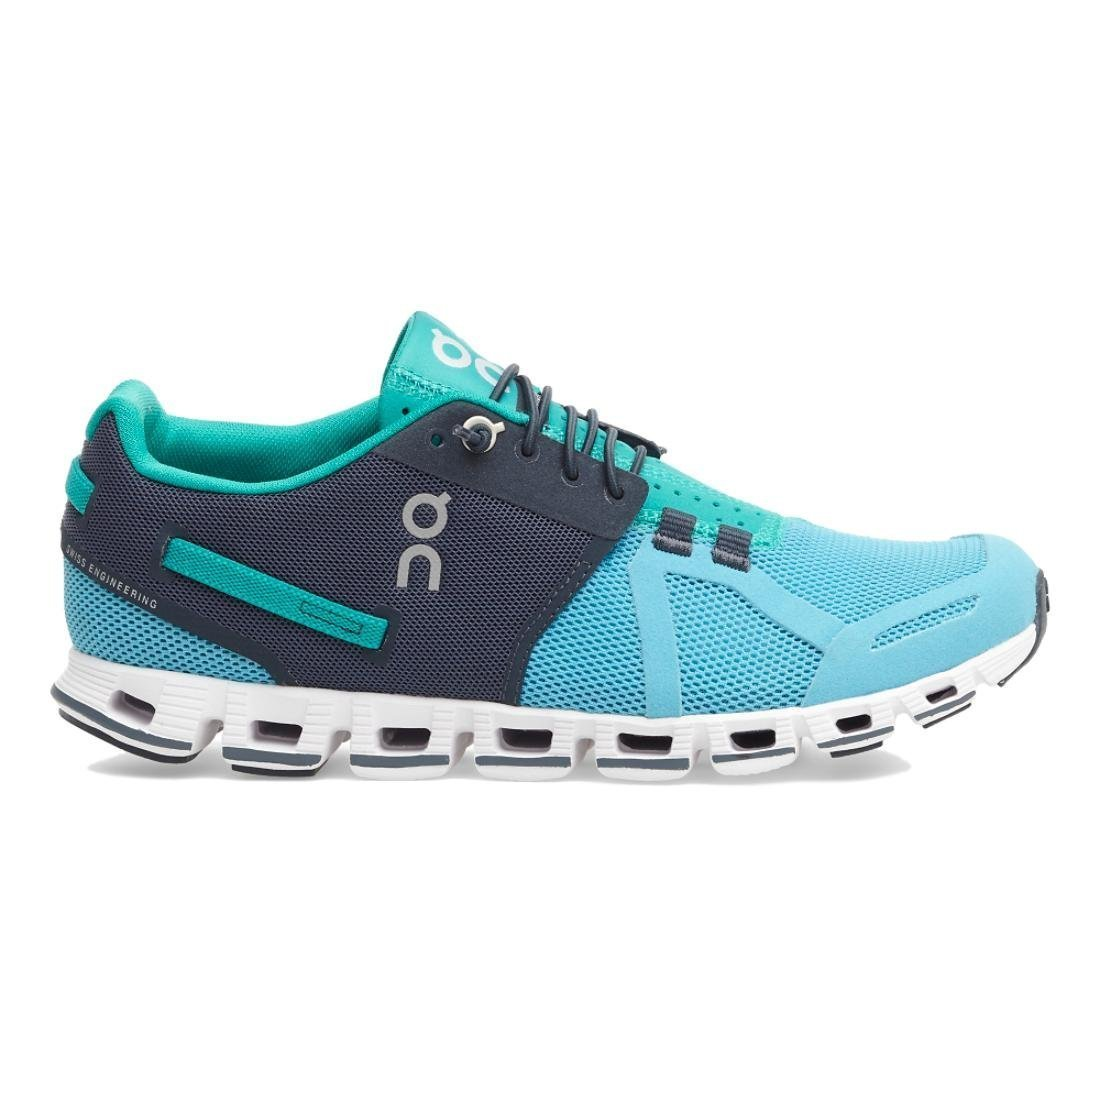 On Cloud Women's Running Shoes -Alton Sports